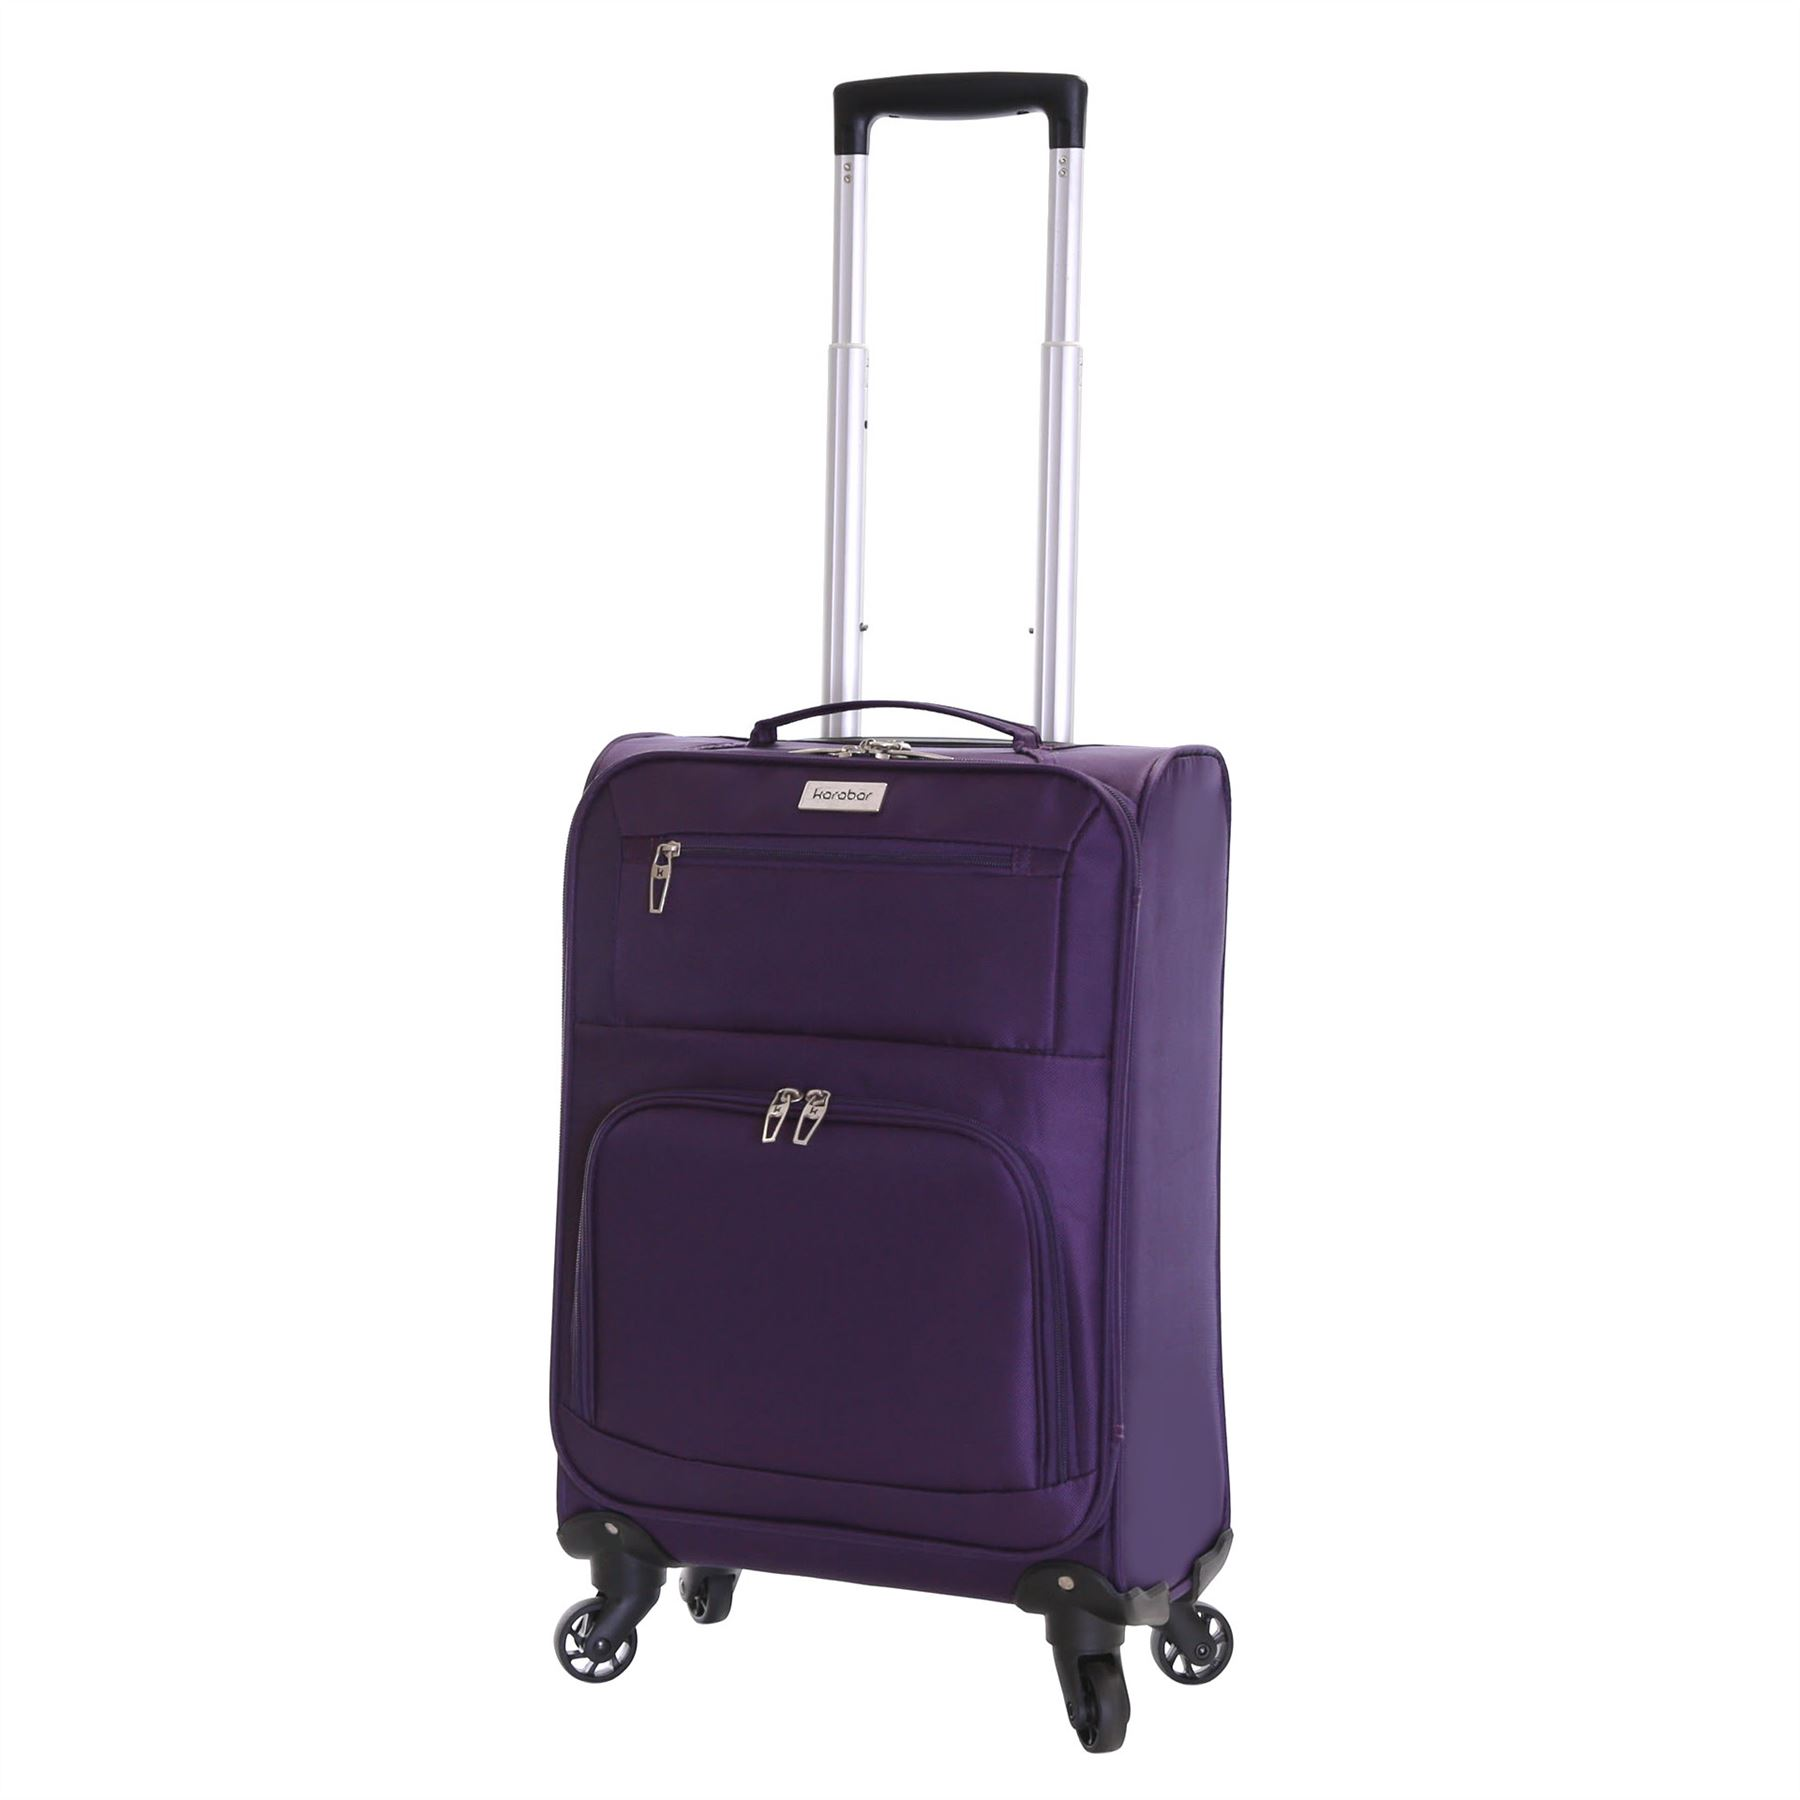 lightweight 4 wheeled extra large cabin trolley luggage